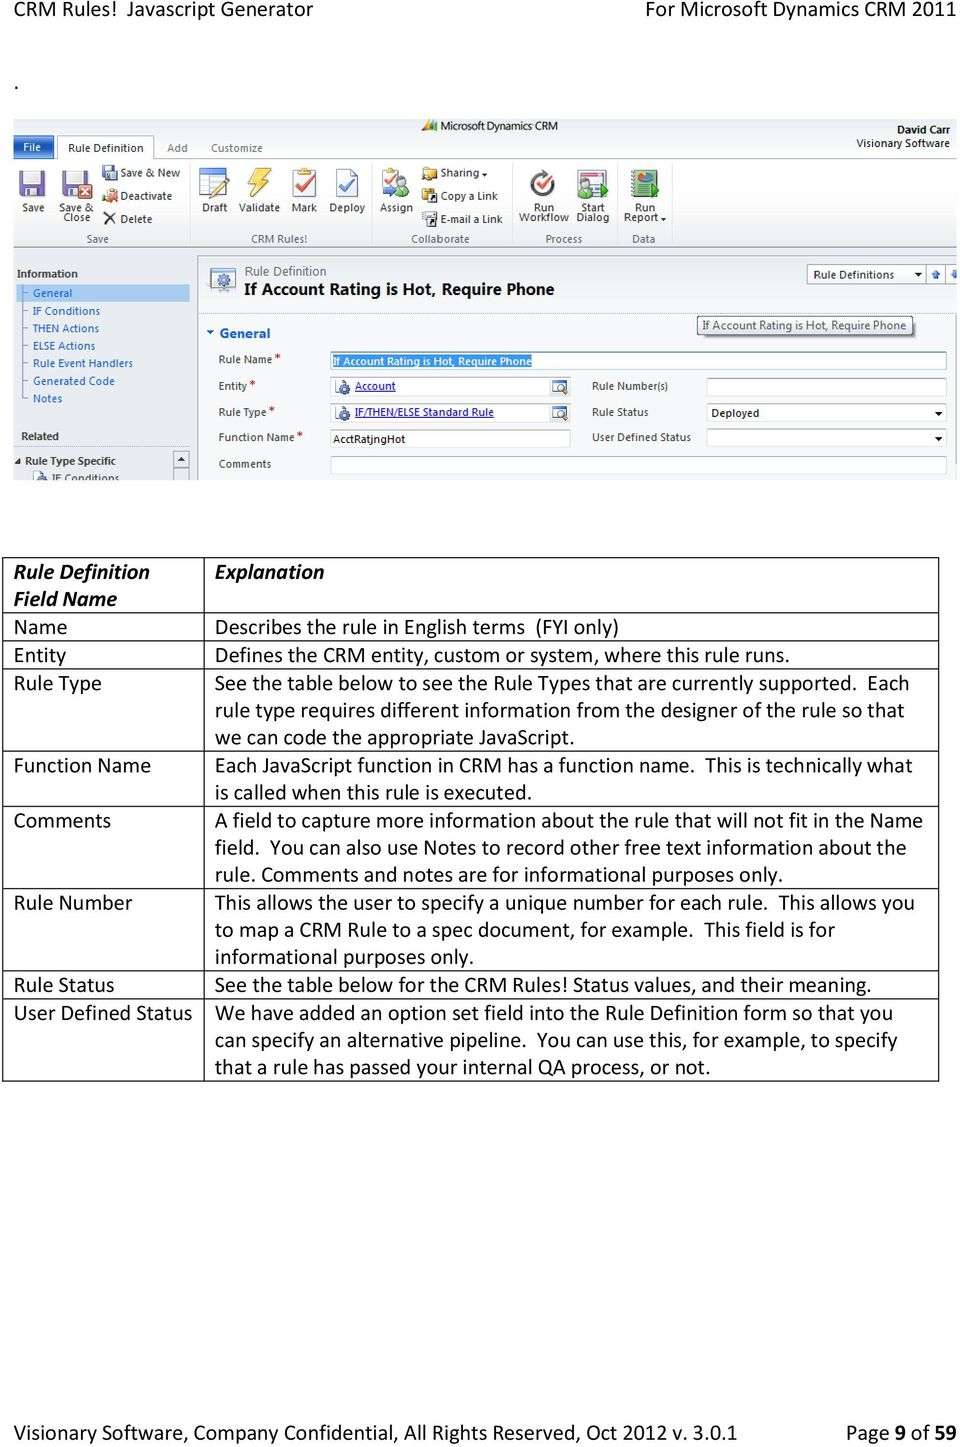 CRM Rules! User Guide  Version Prepared October, 2012 By: David L